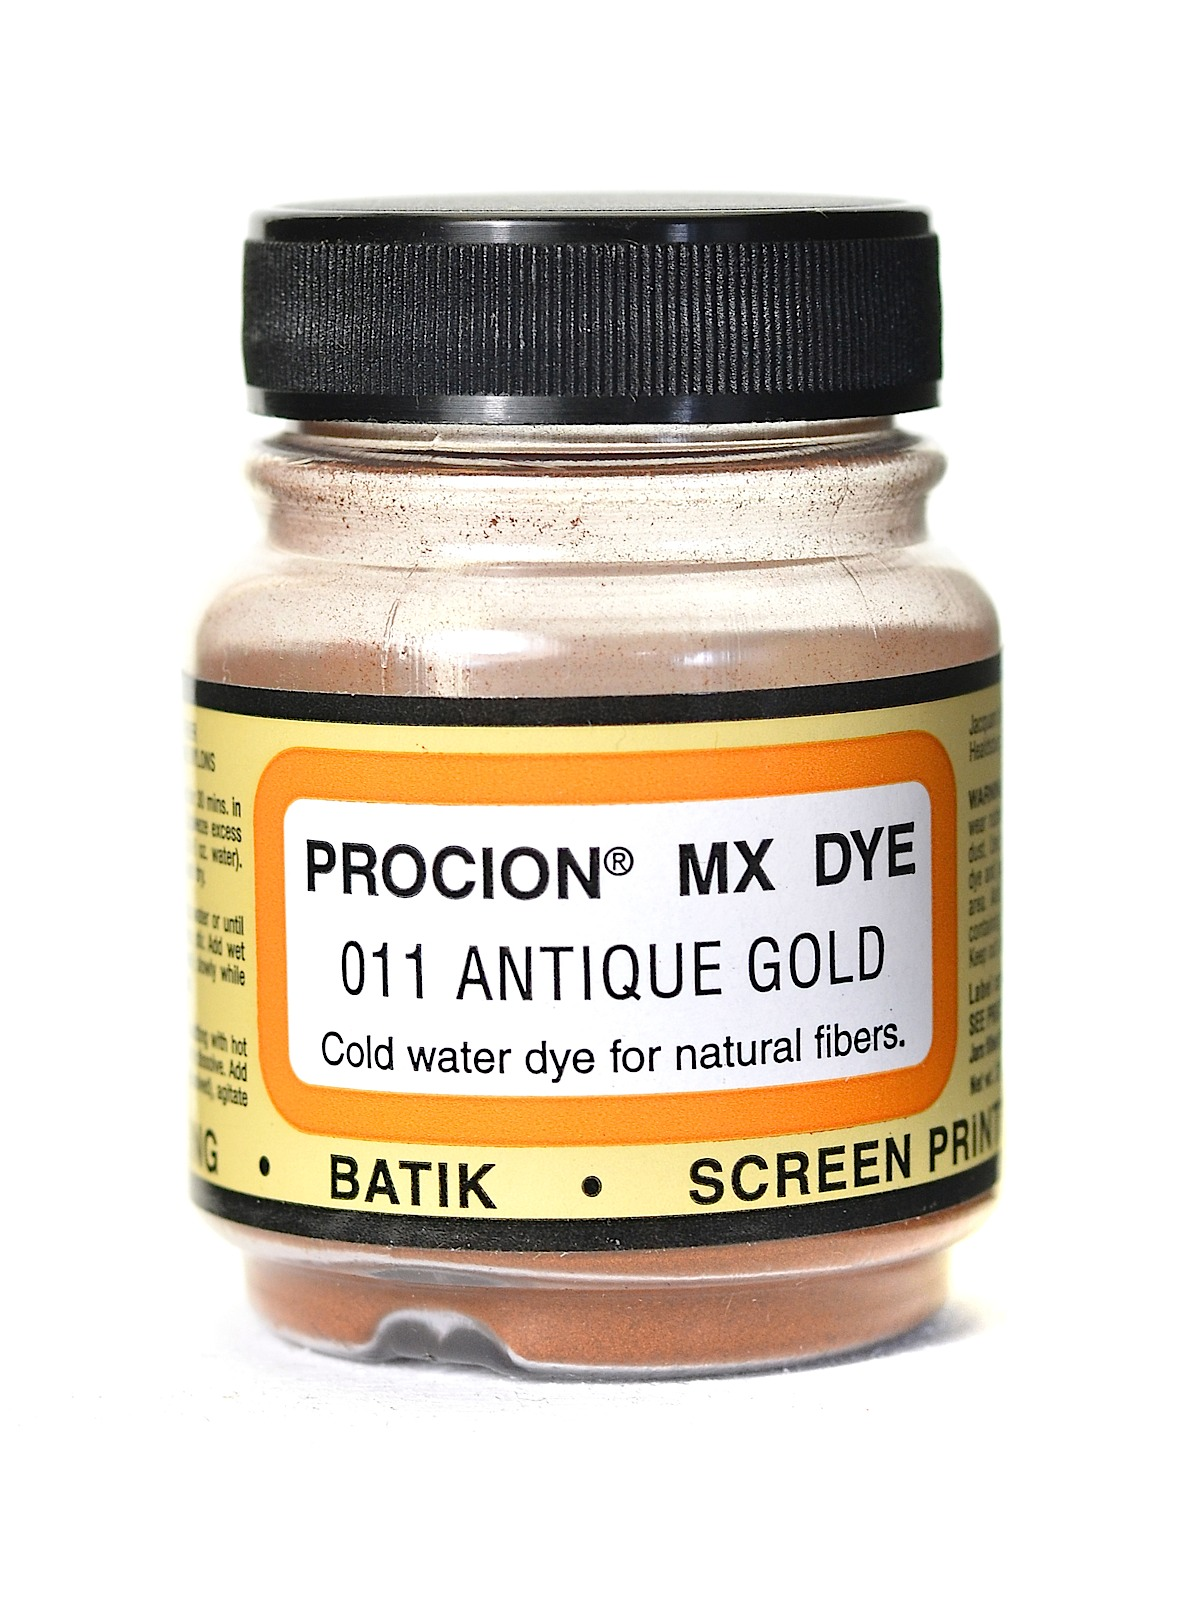 Jacquard Procion MX dye 2011 antique gold